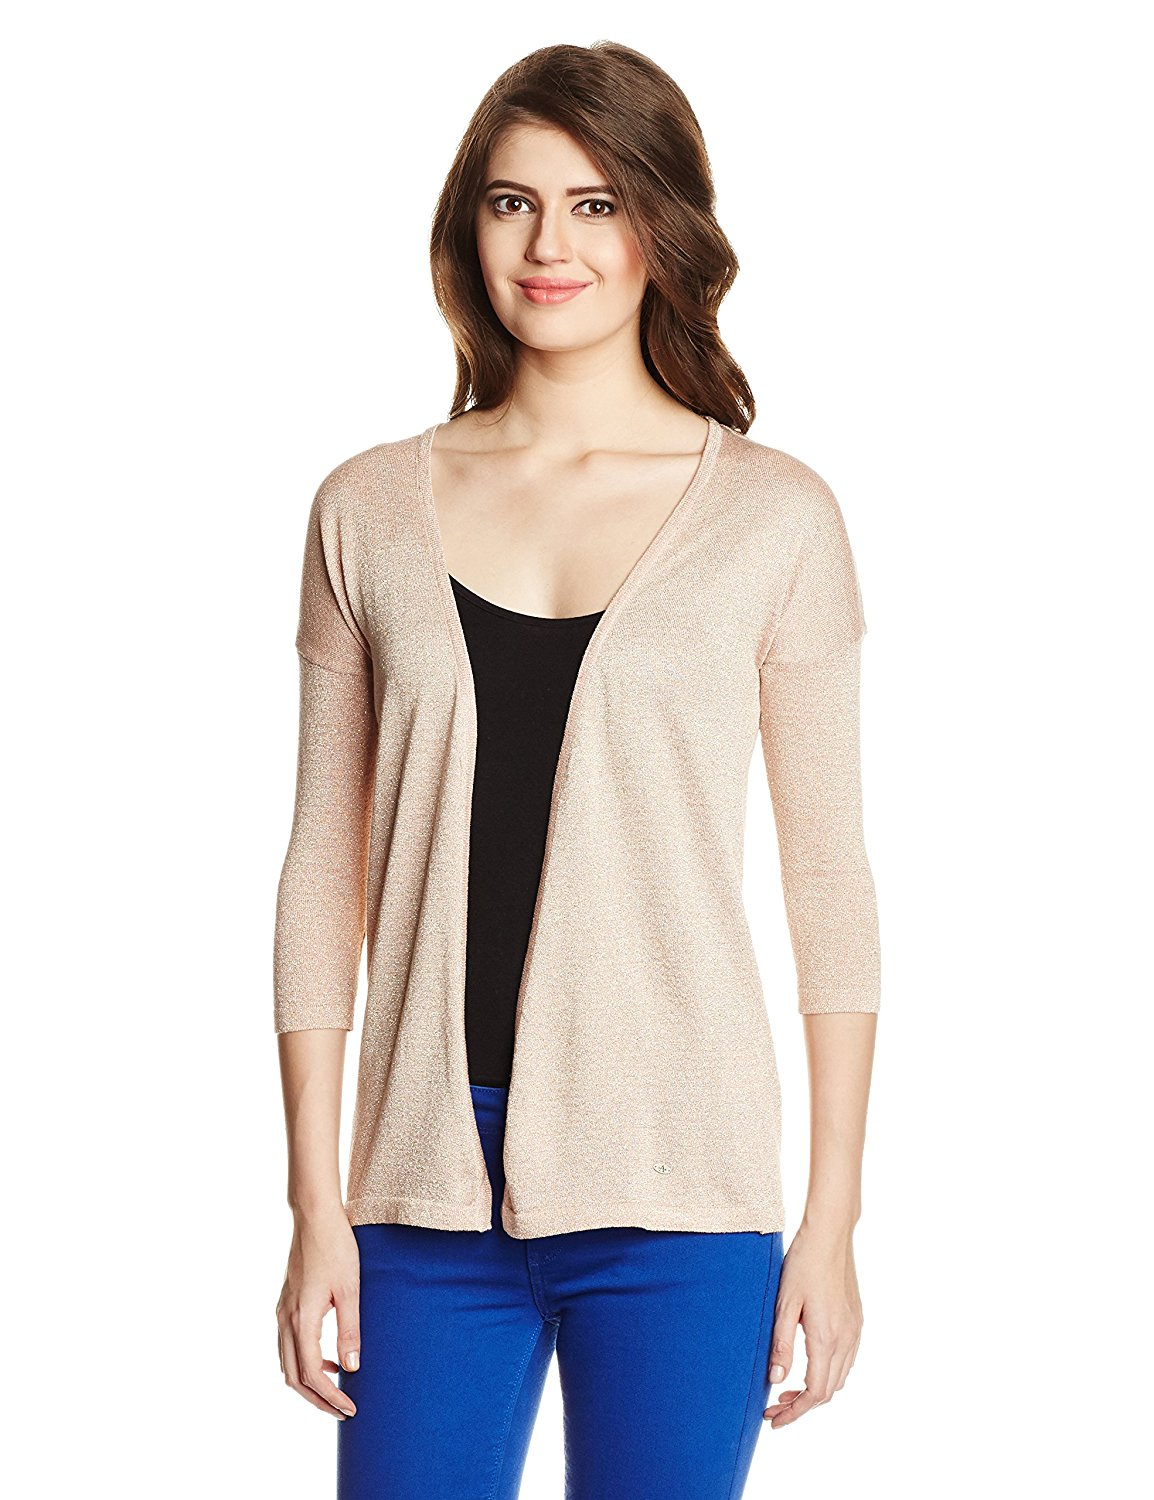 Minimum 70% Off on Women's Clothings Starts from Rs. 119 discount offer